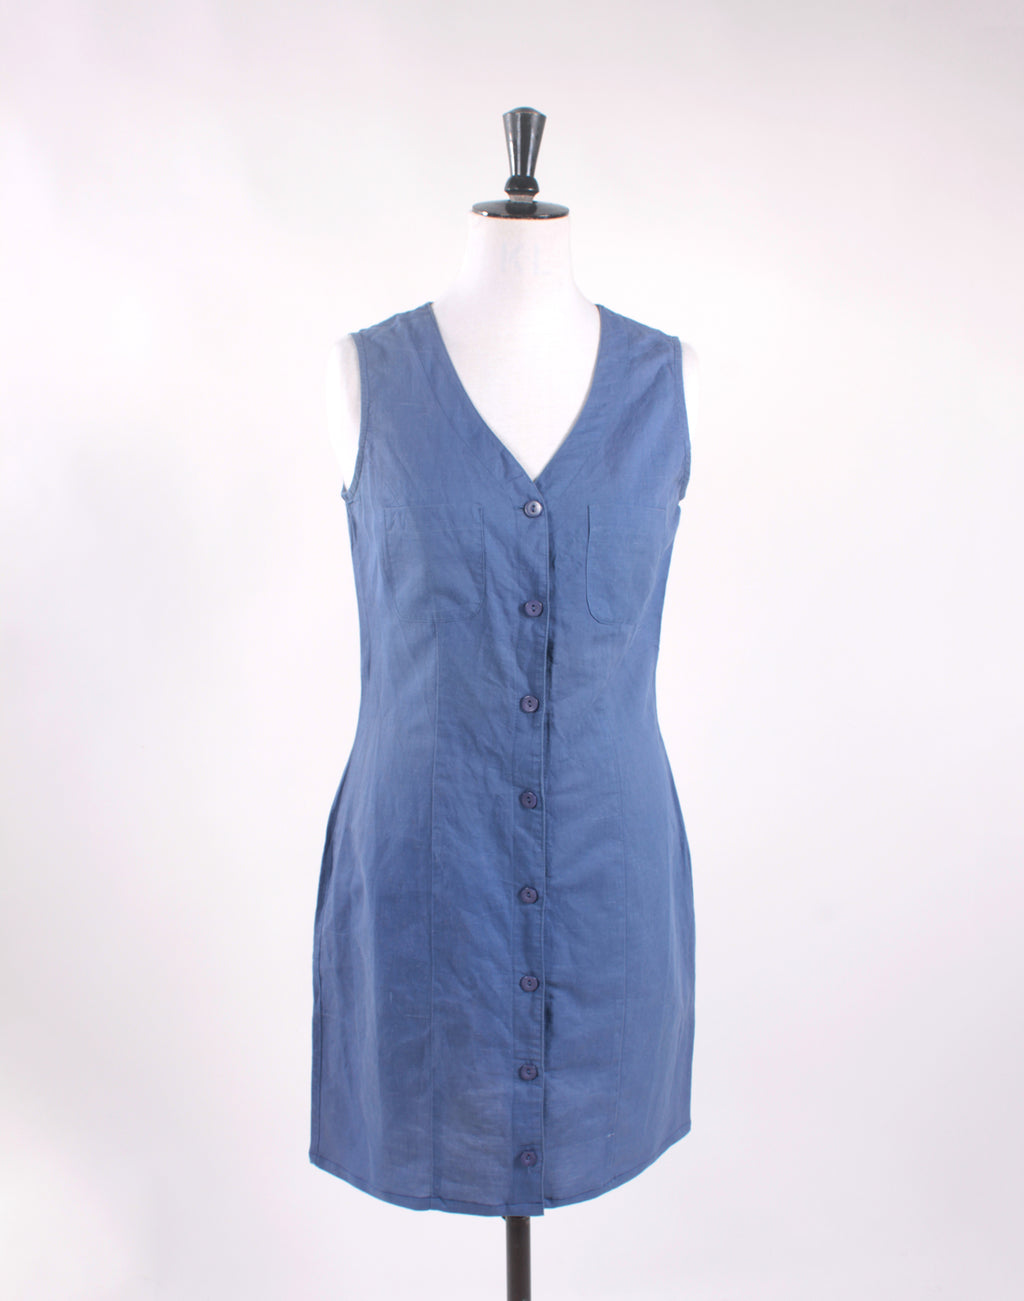 Vintage 90's Blue Linen Button Up Shift Dress